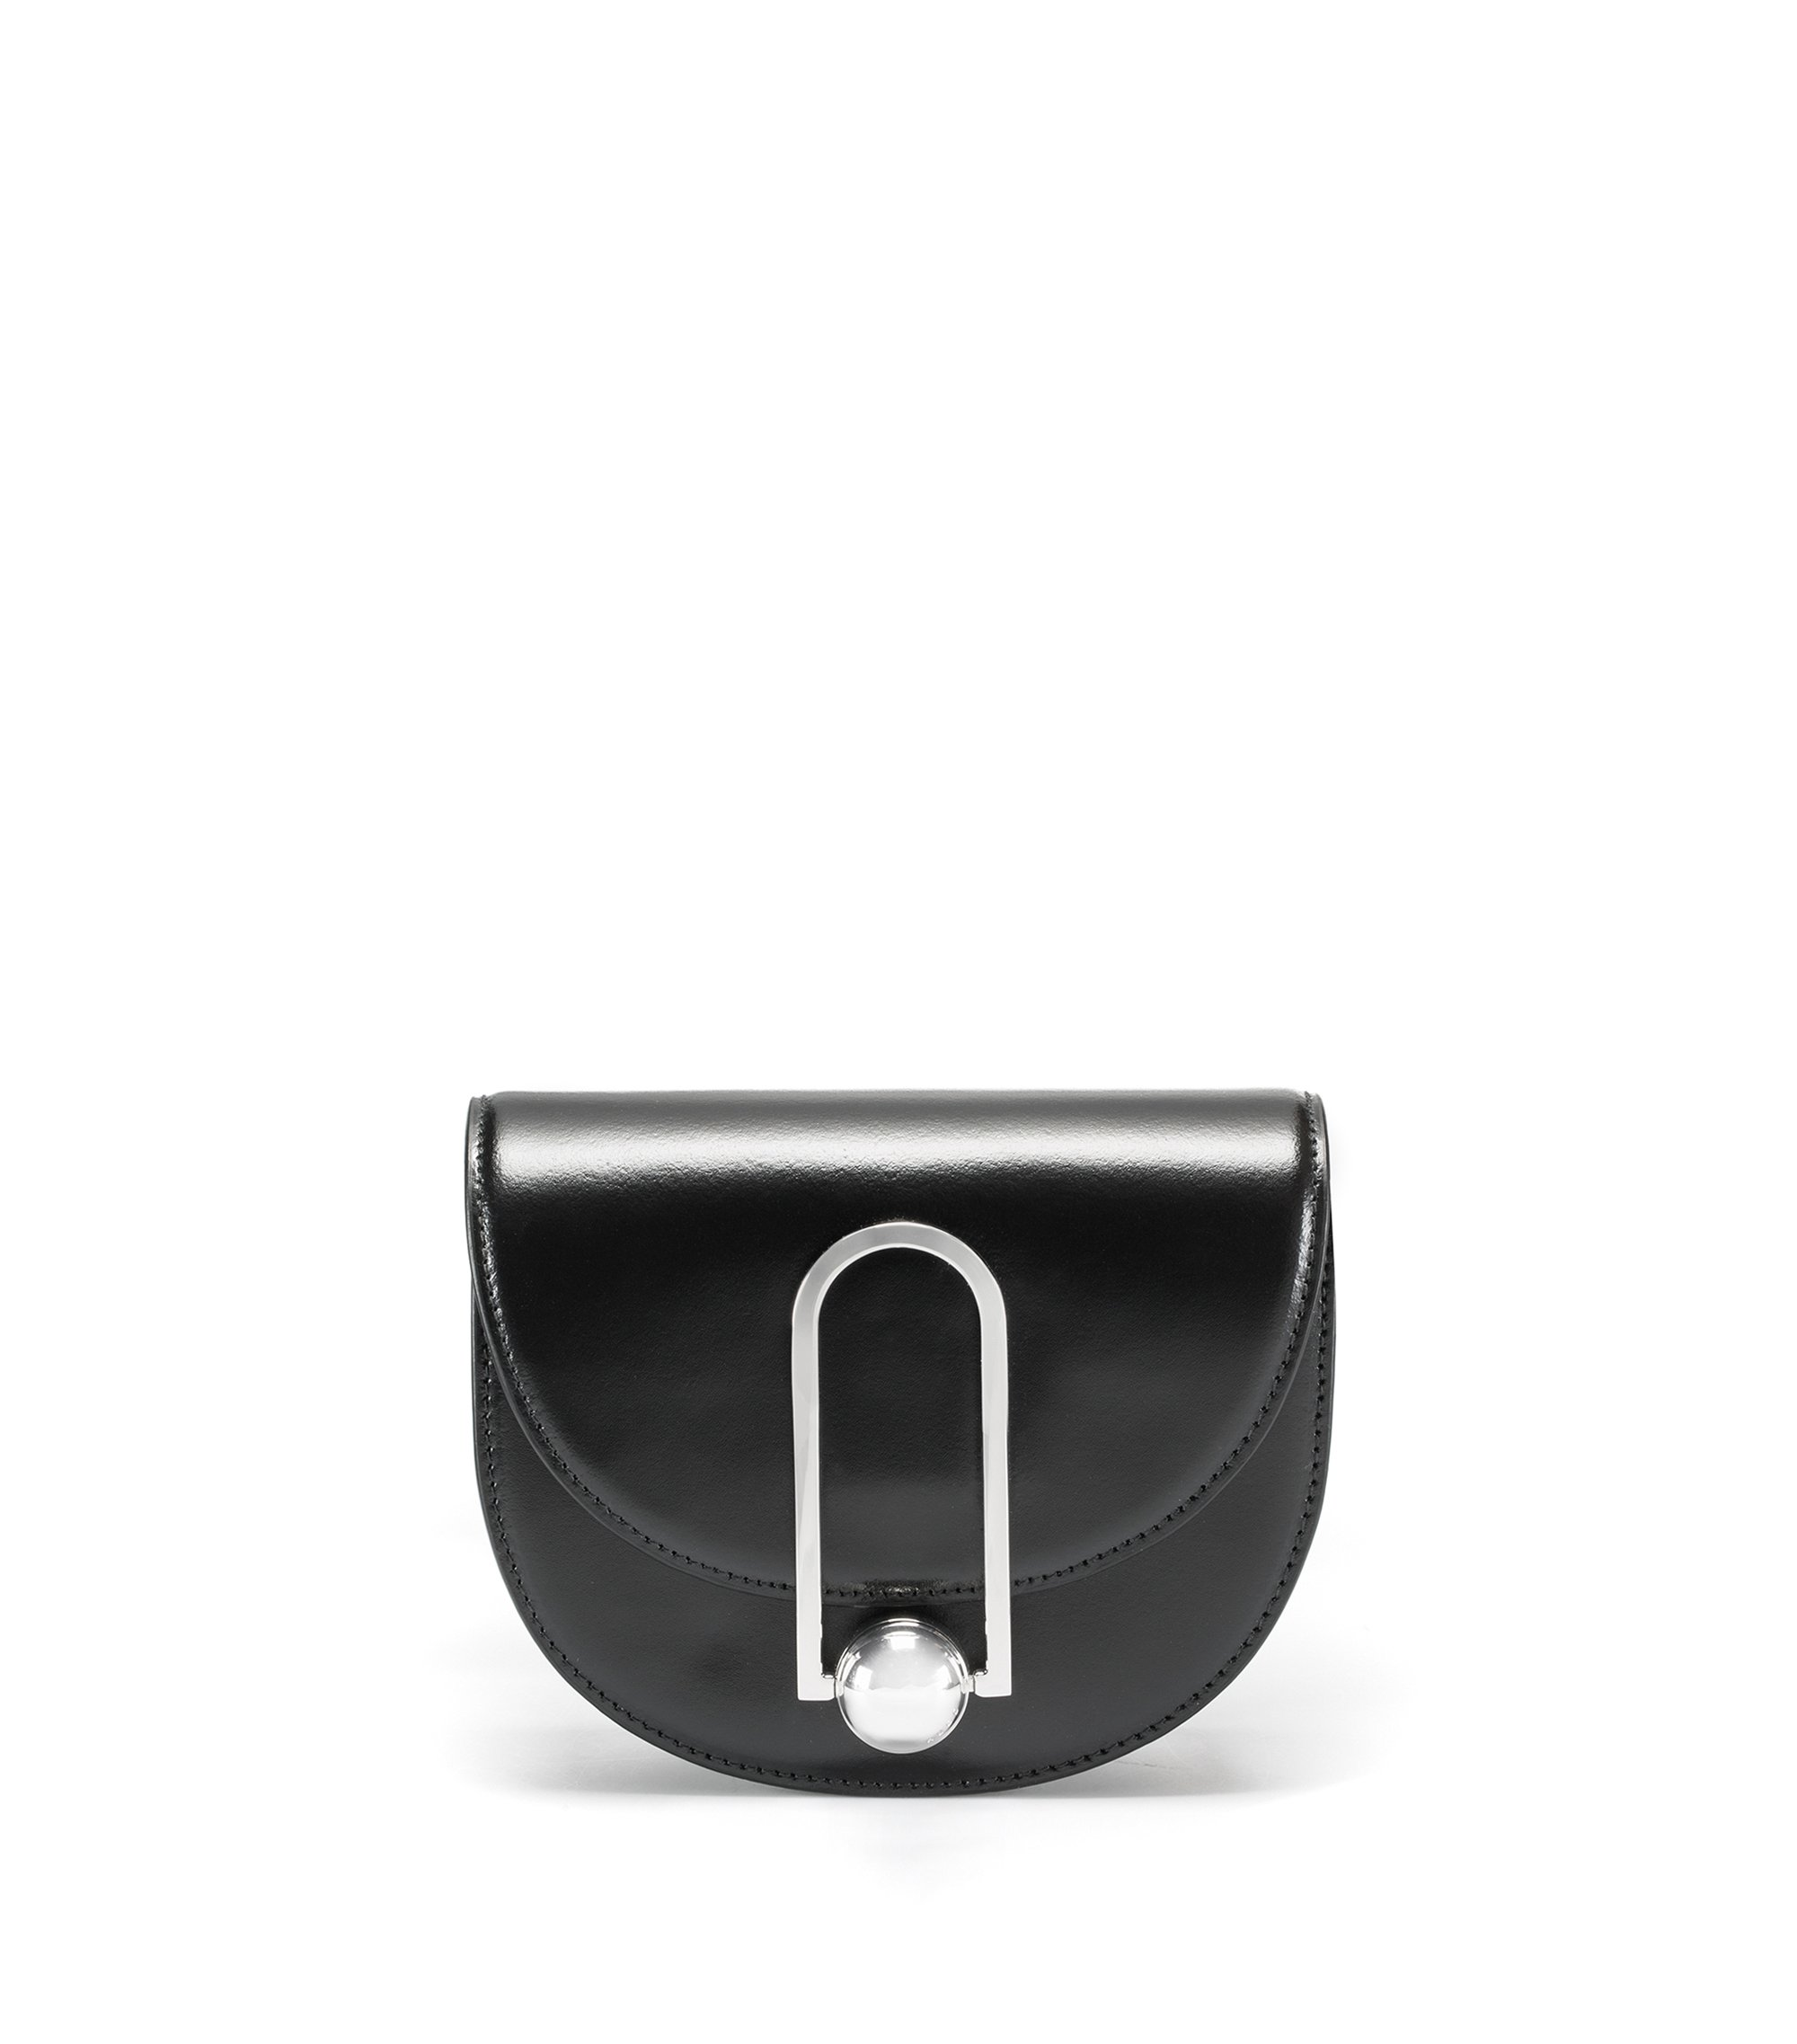 Leather mini bag with polished metal clasp, Black